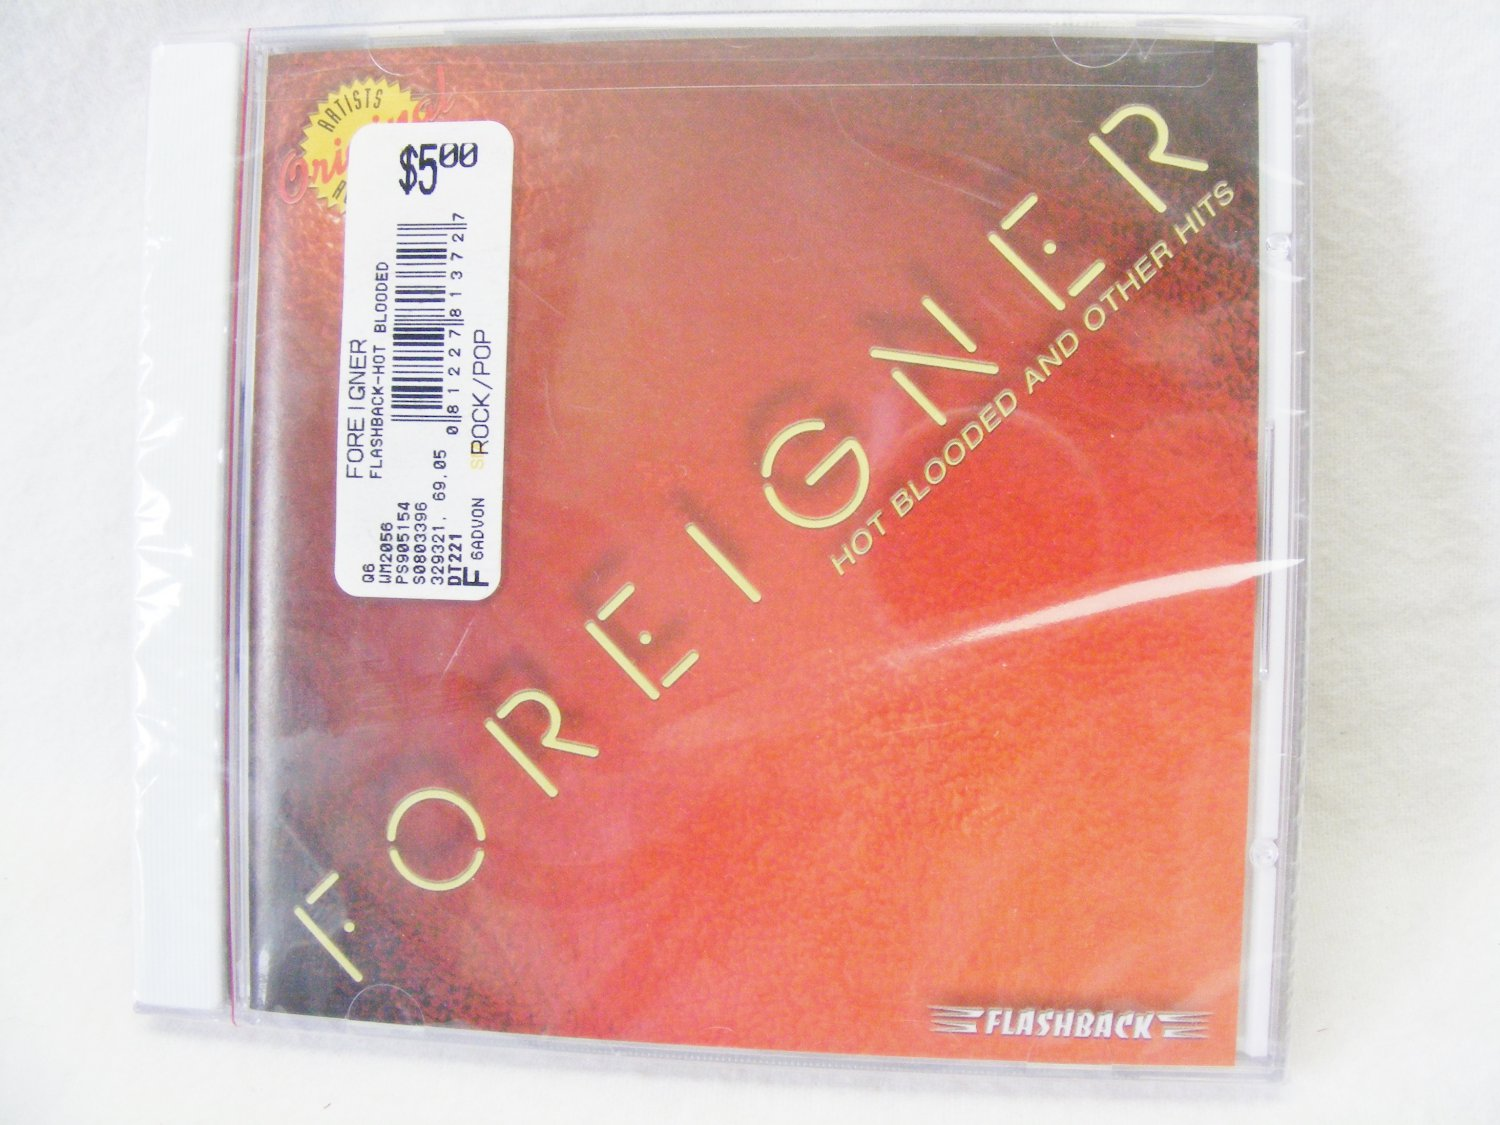 Hot Blooded and Other Hits by Foreigner (CD, 2004, Rhino Flashback) NEW Sealed